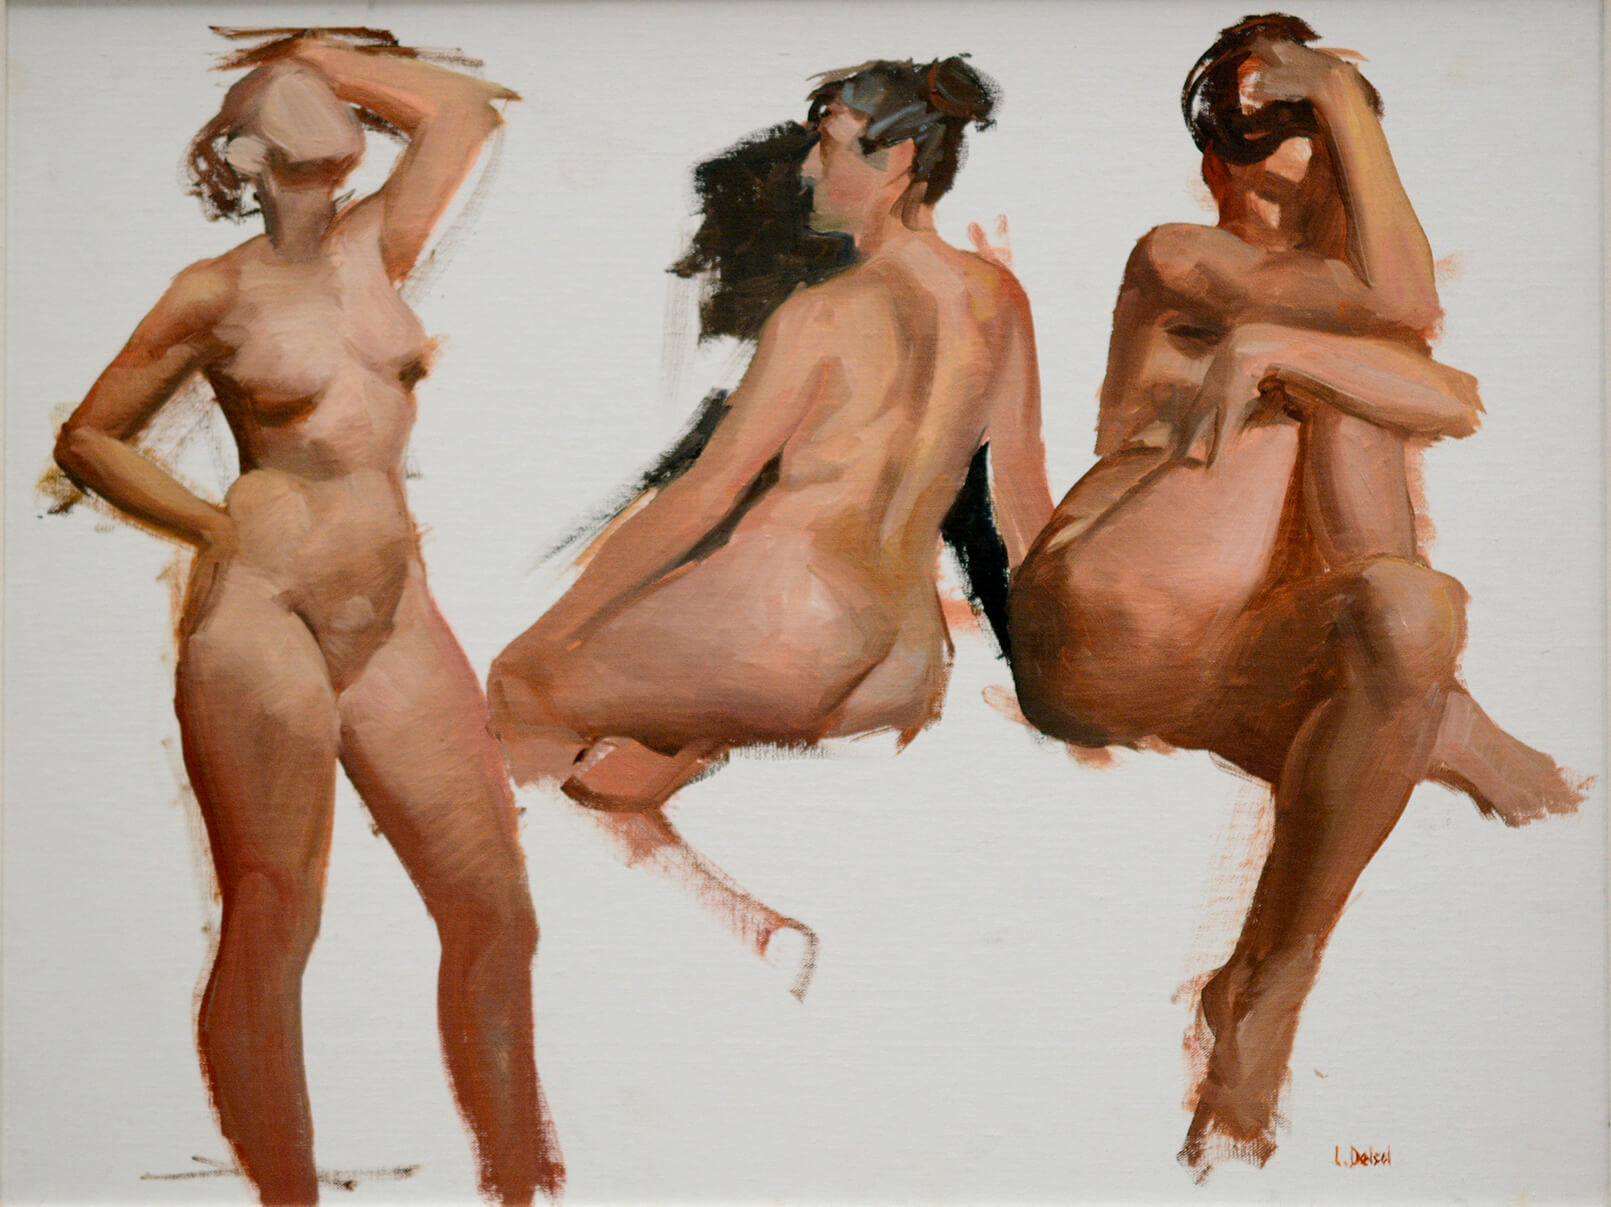 Gestural figurative oil study of three nude women on a white background